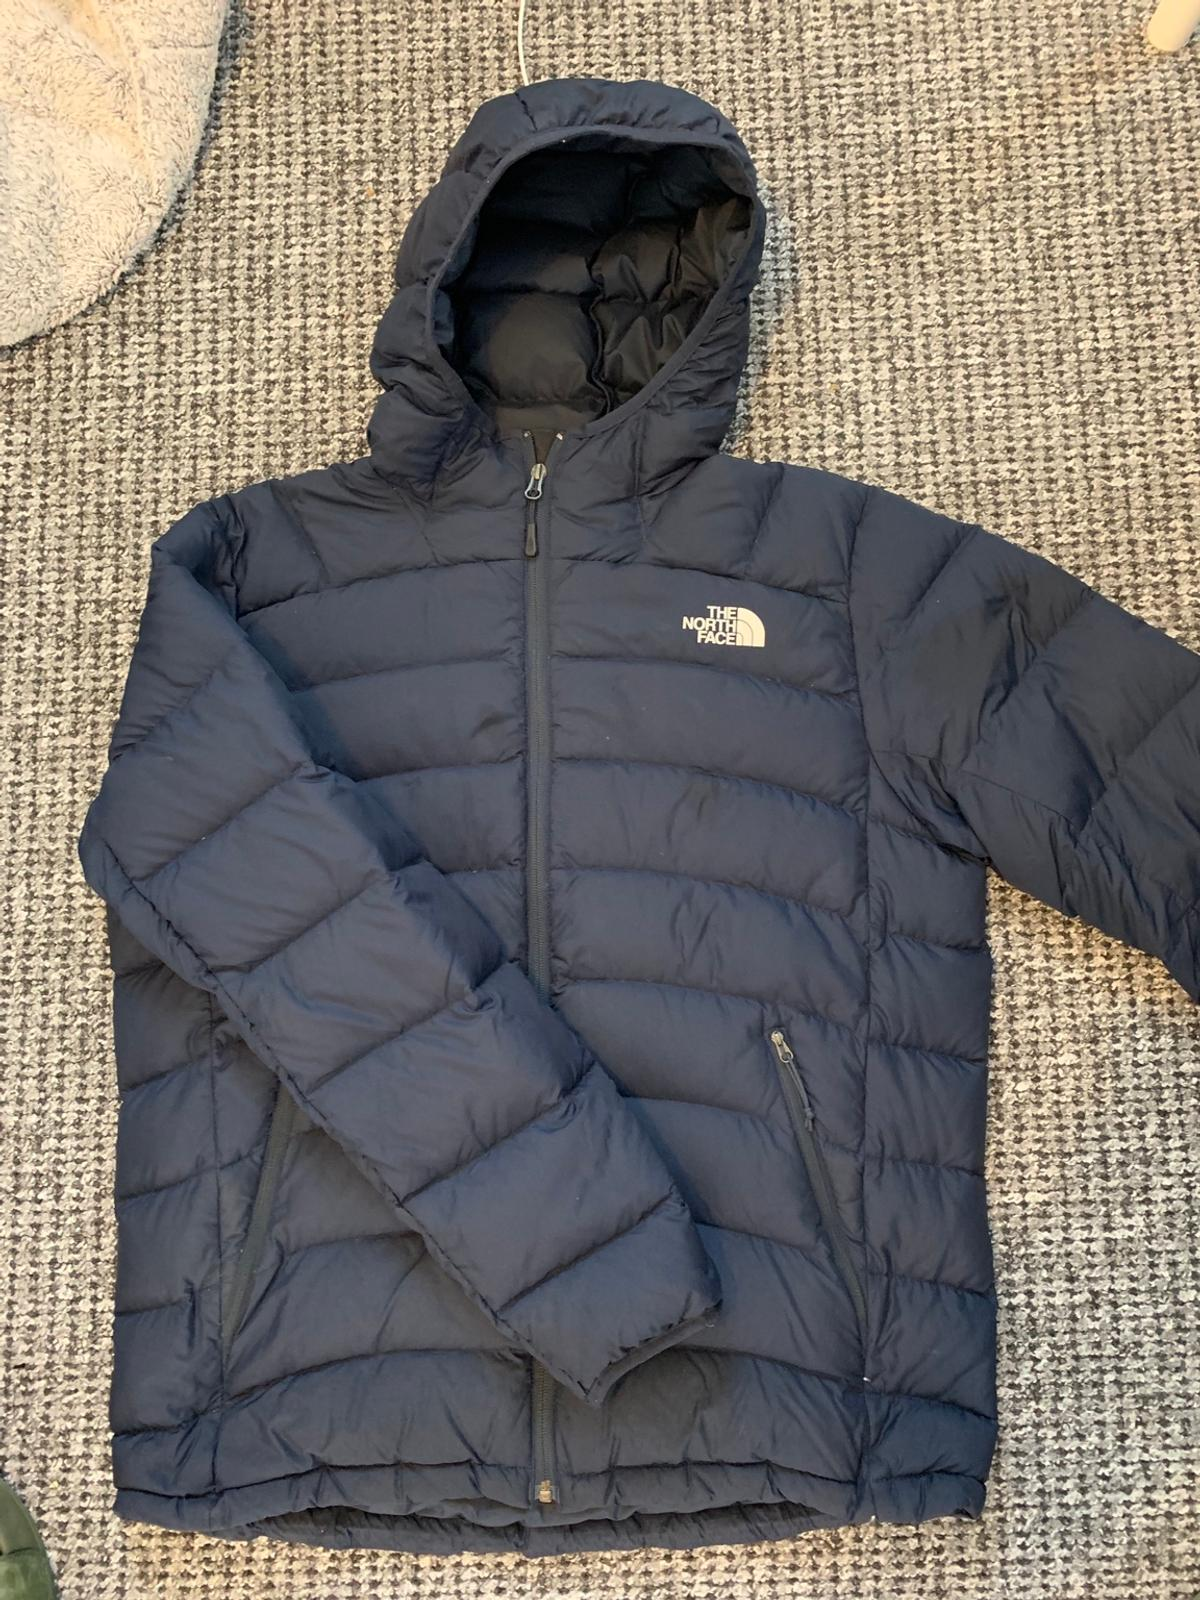 cool North Face Bubble Jackets | Jacket | North face bubble